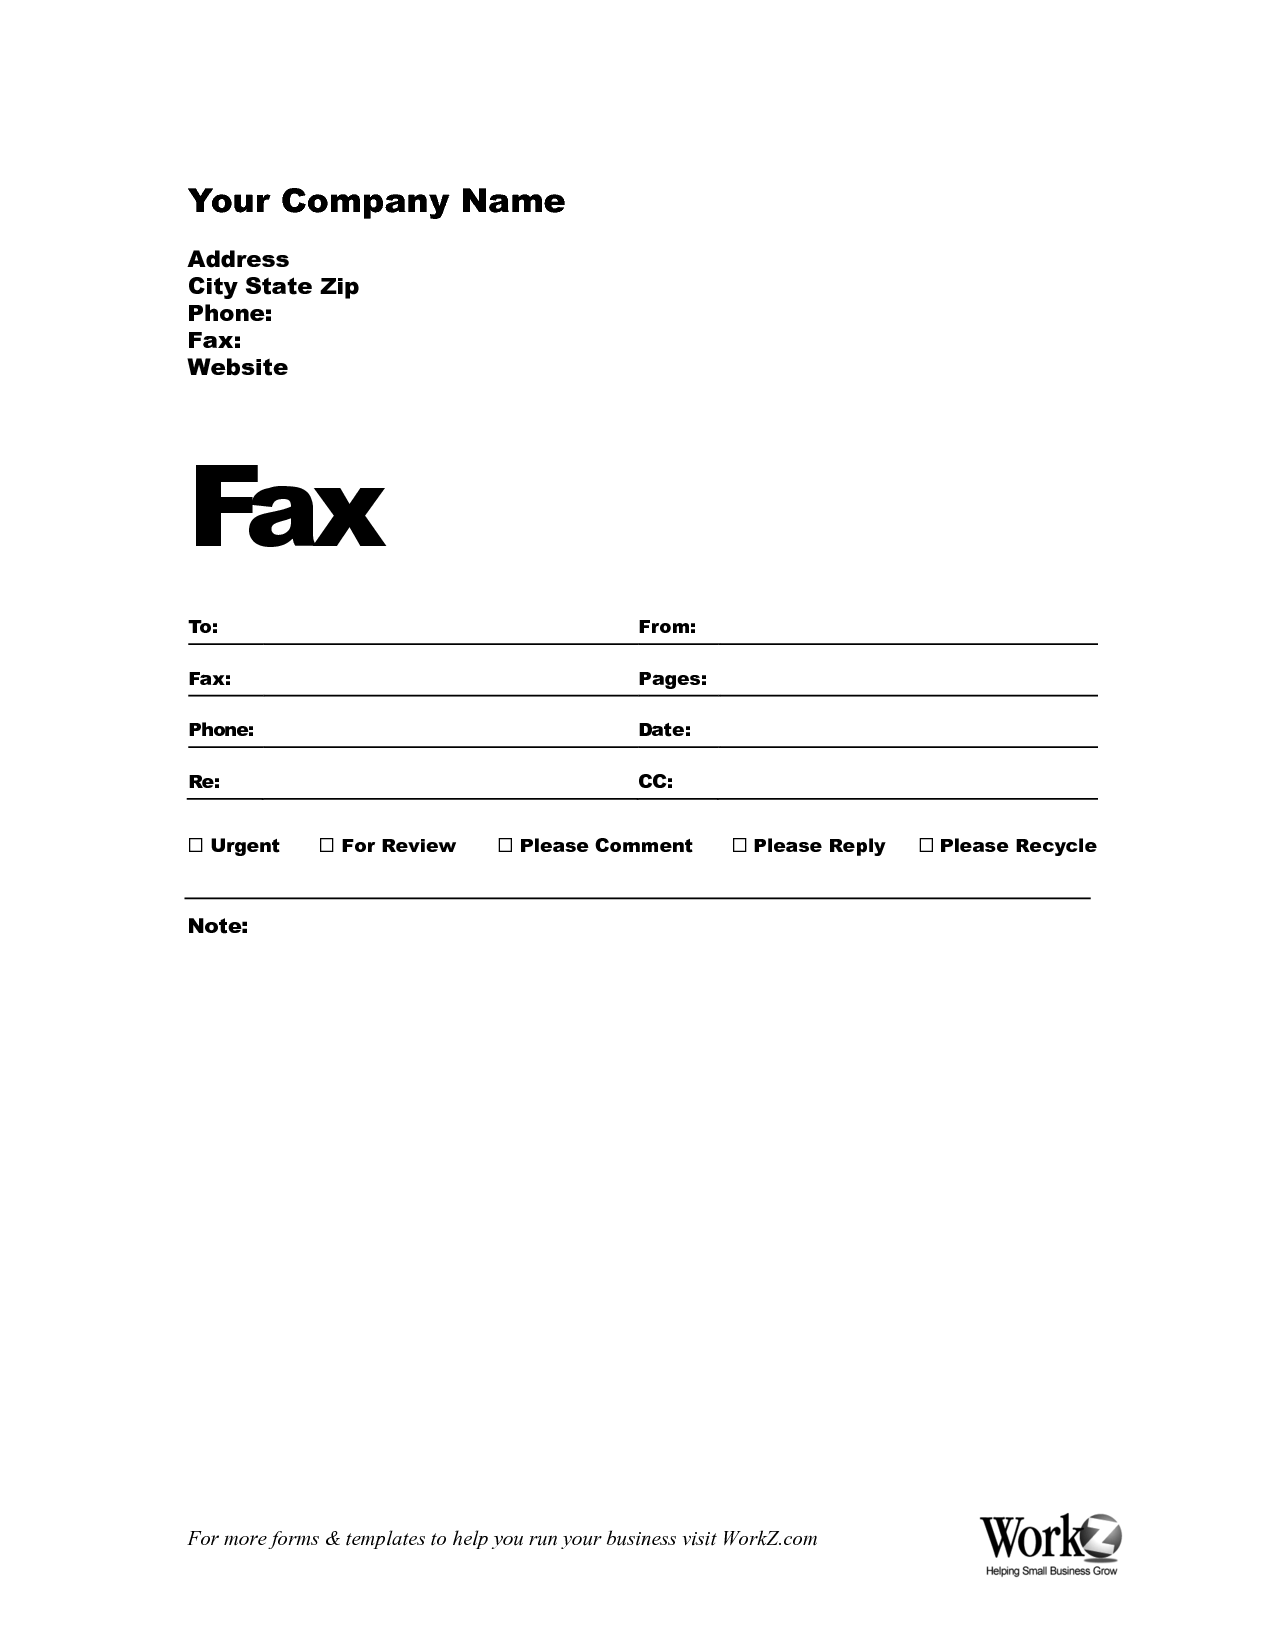 fax word template professional cover sheet free pdf letter resume best free home design idea inspiration - Cover Letter For Resume Template Microsoft Word